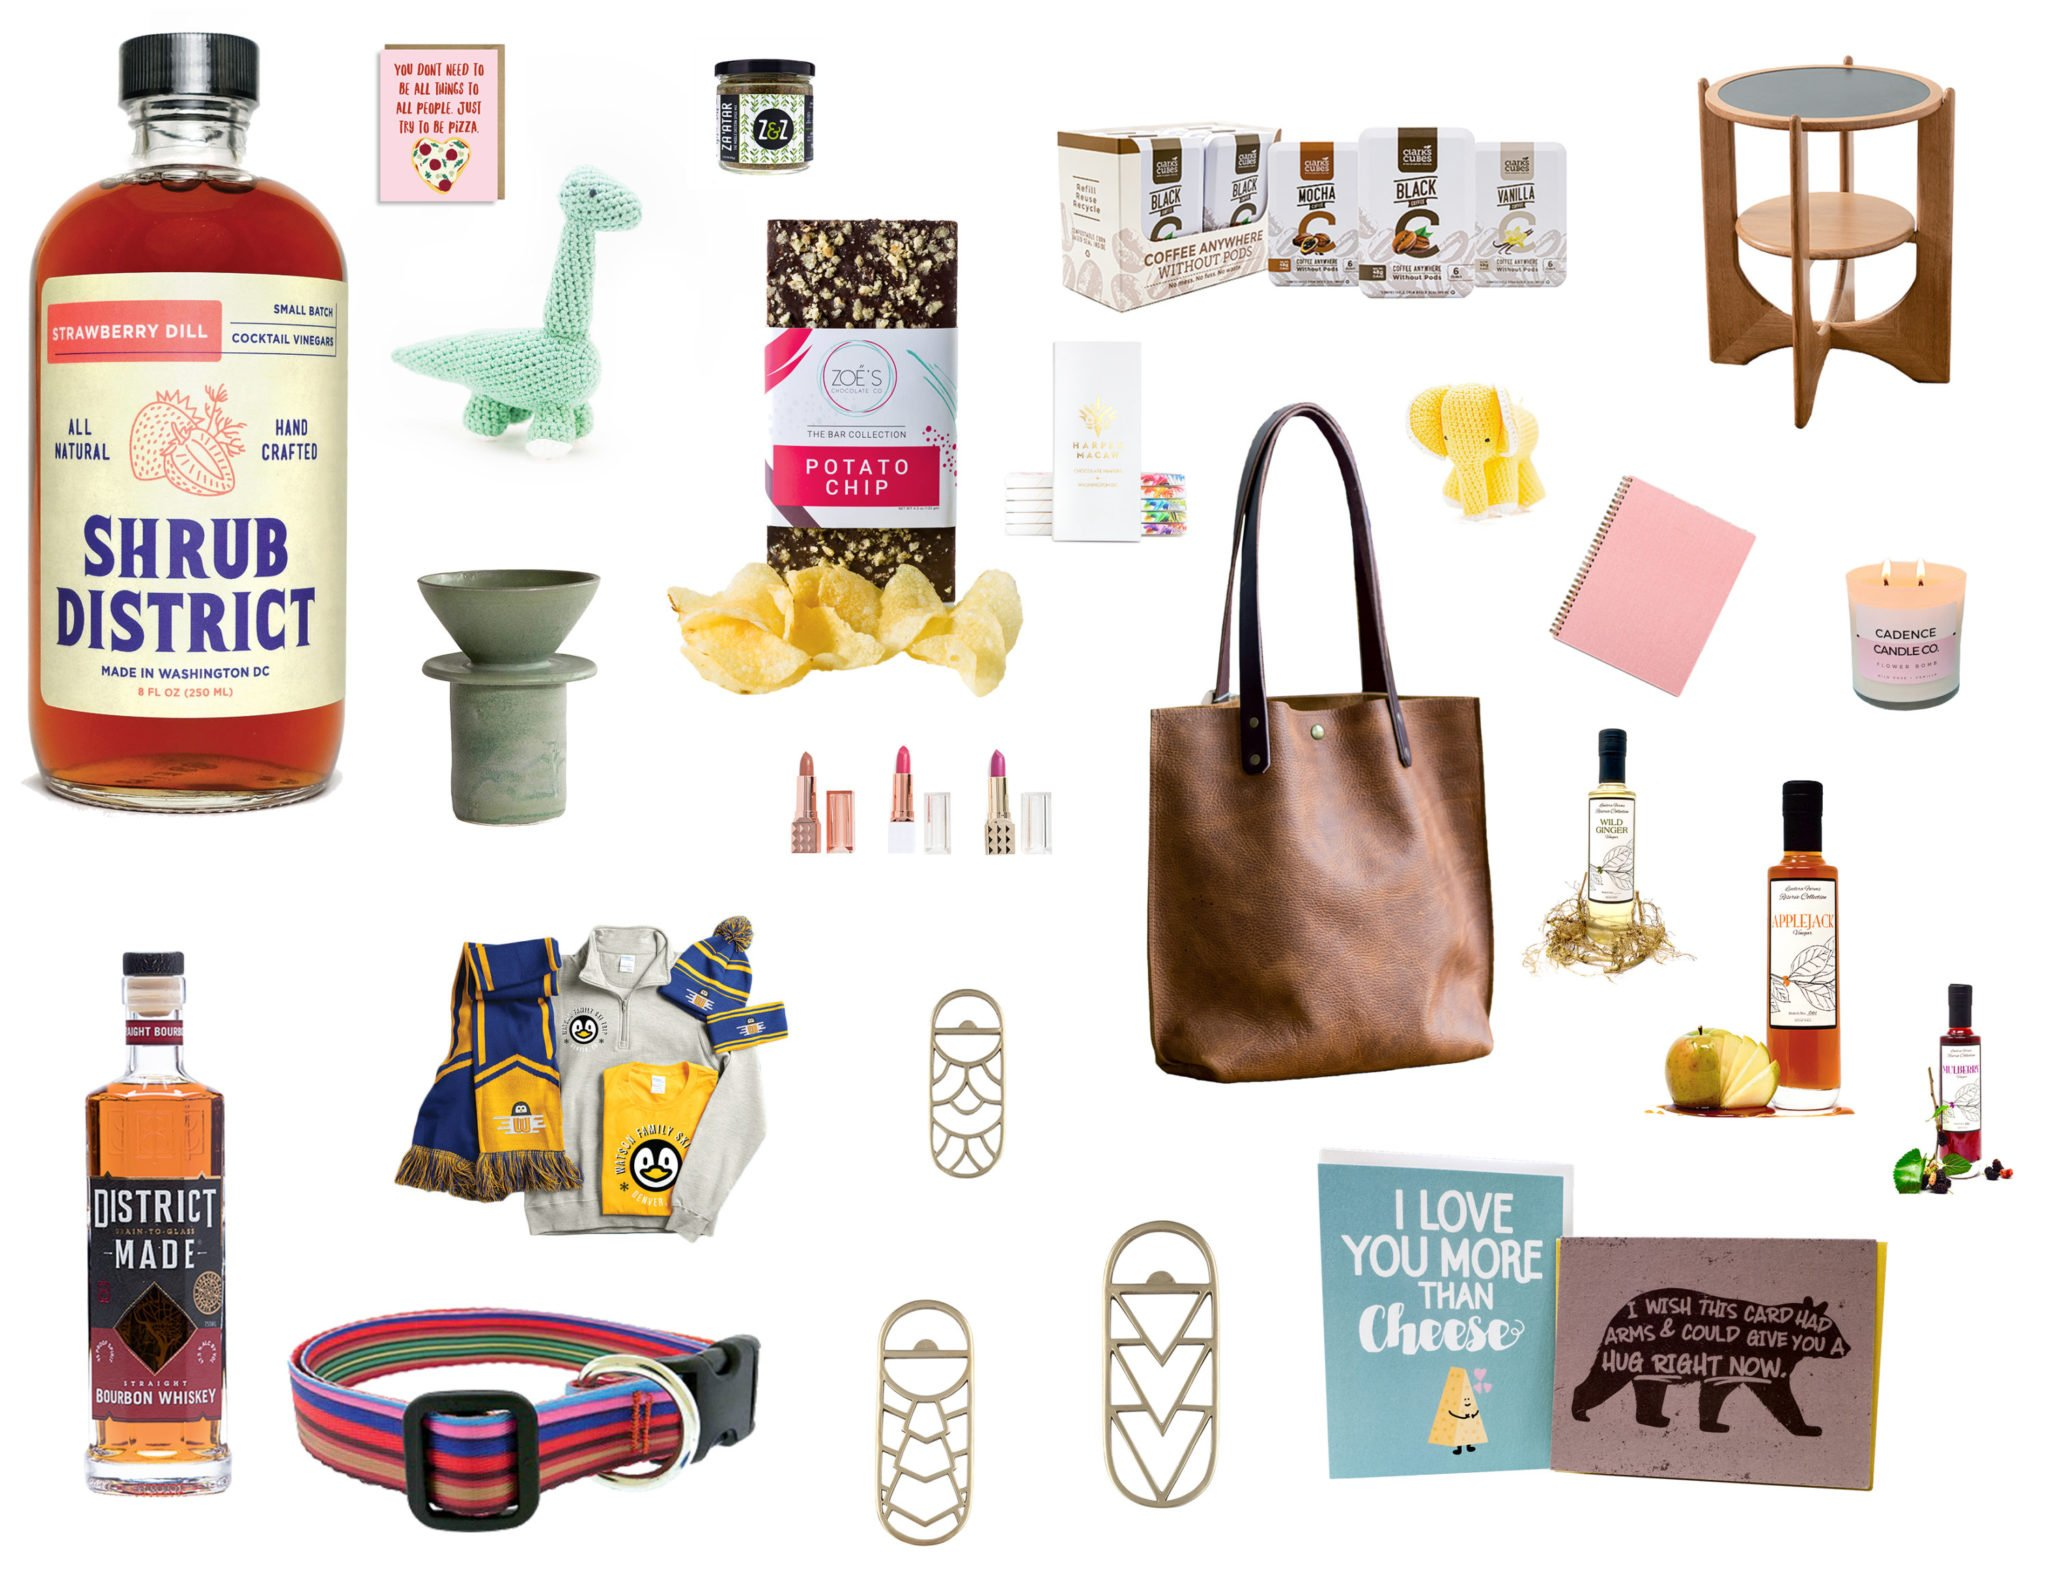 18 Made in DC Products That Will Make Great Gifts This Season